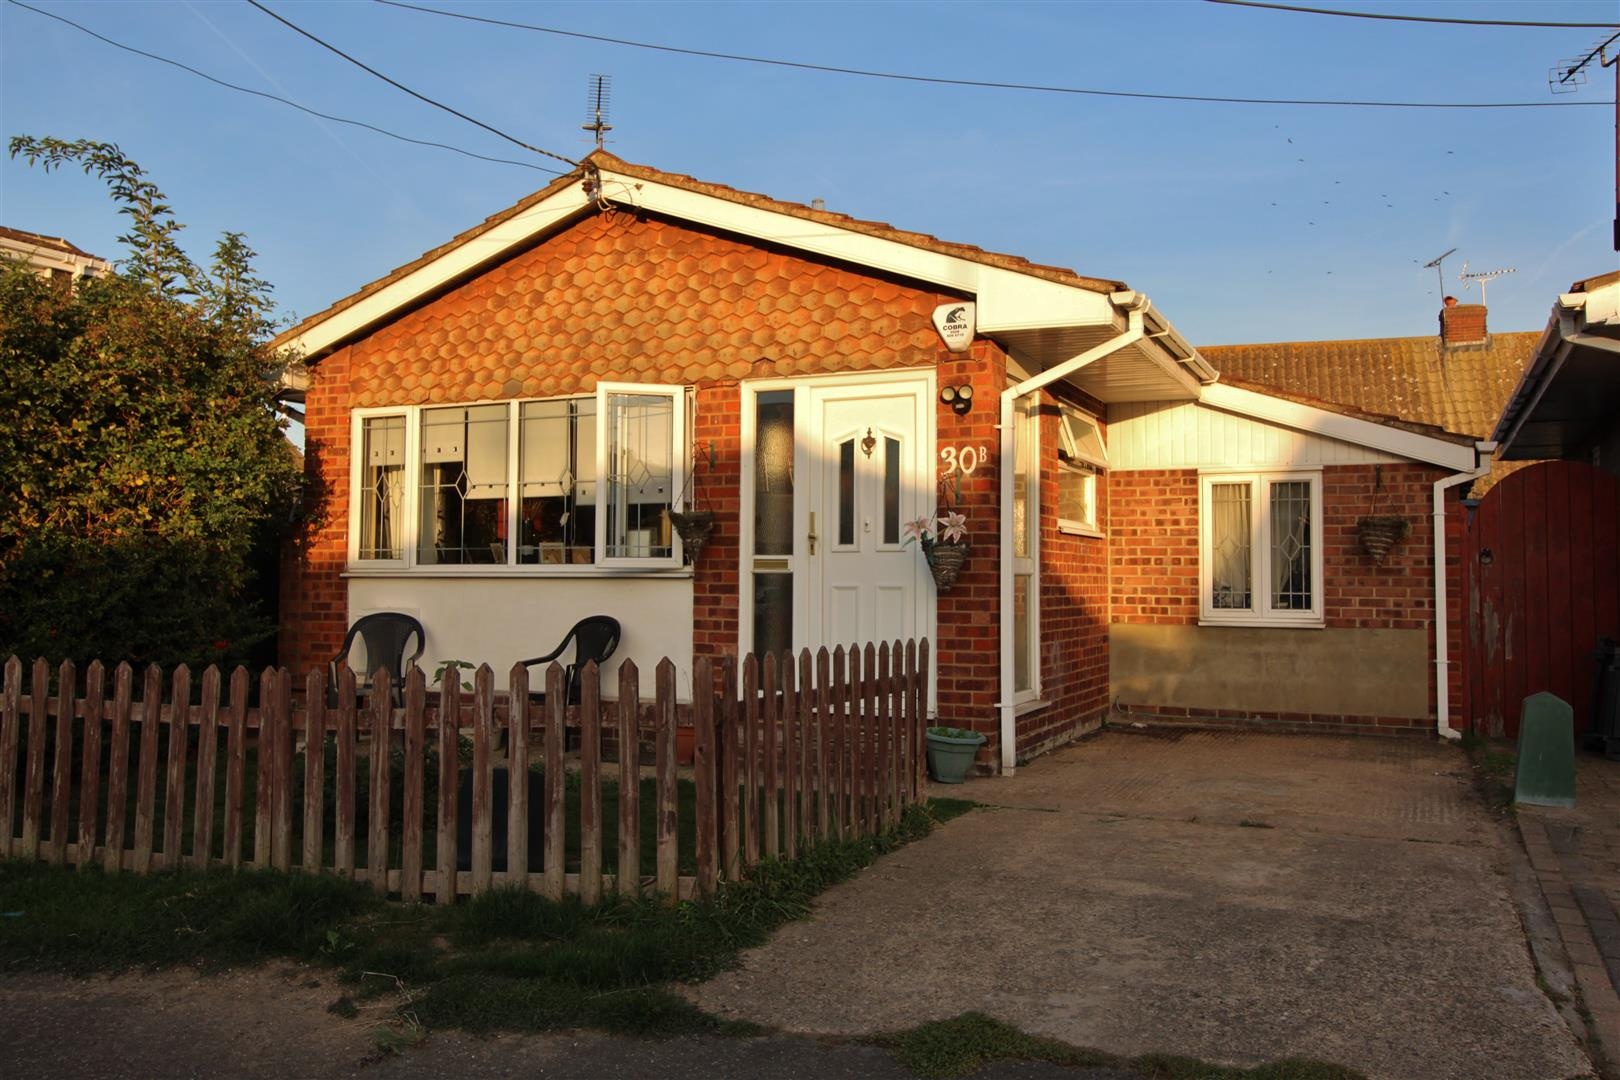 Norton Avenue, Canvey Island